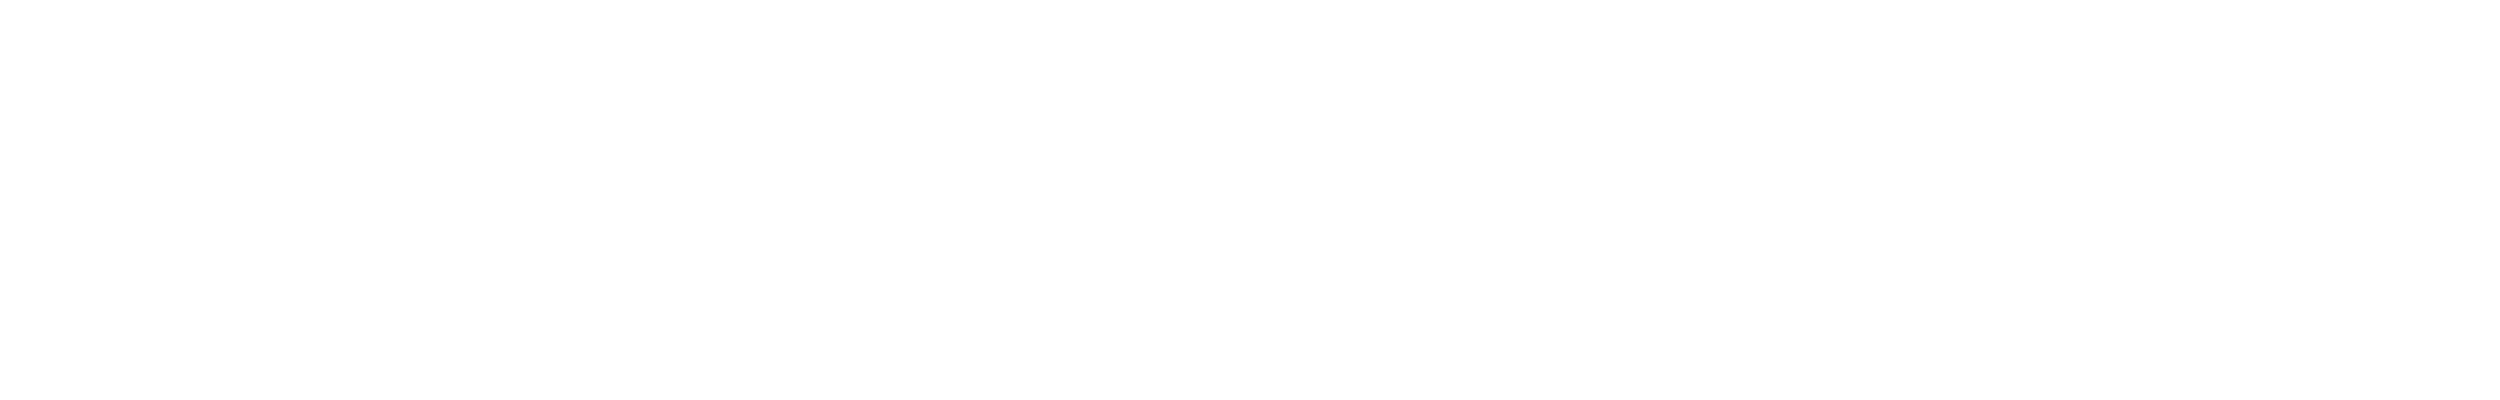 providers-smartphone-icon.png